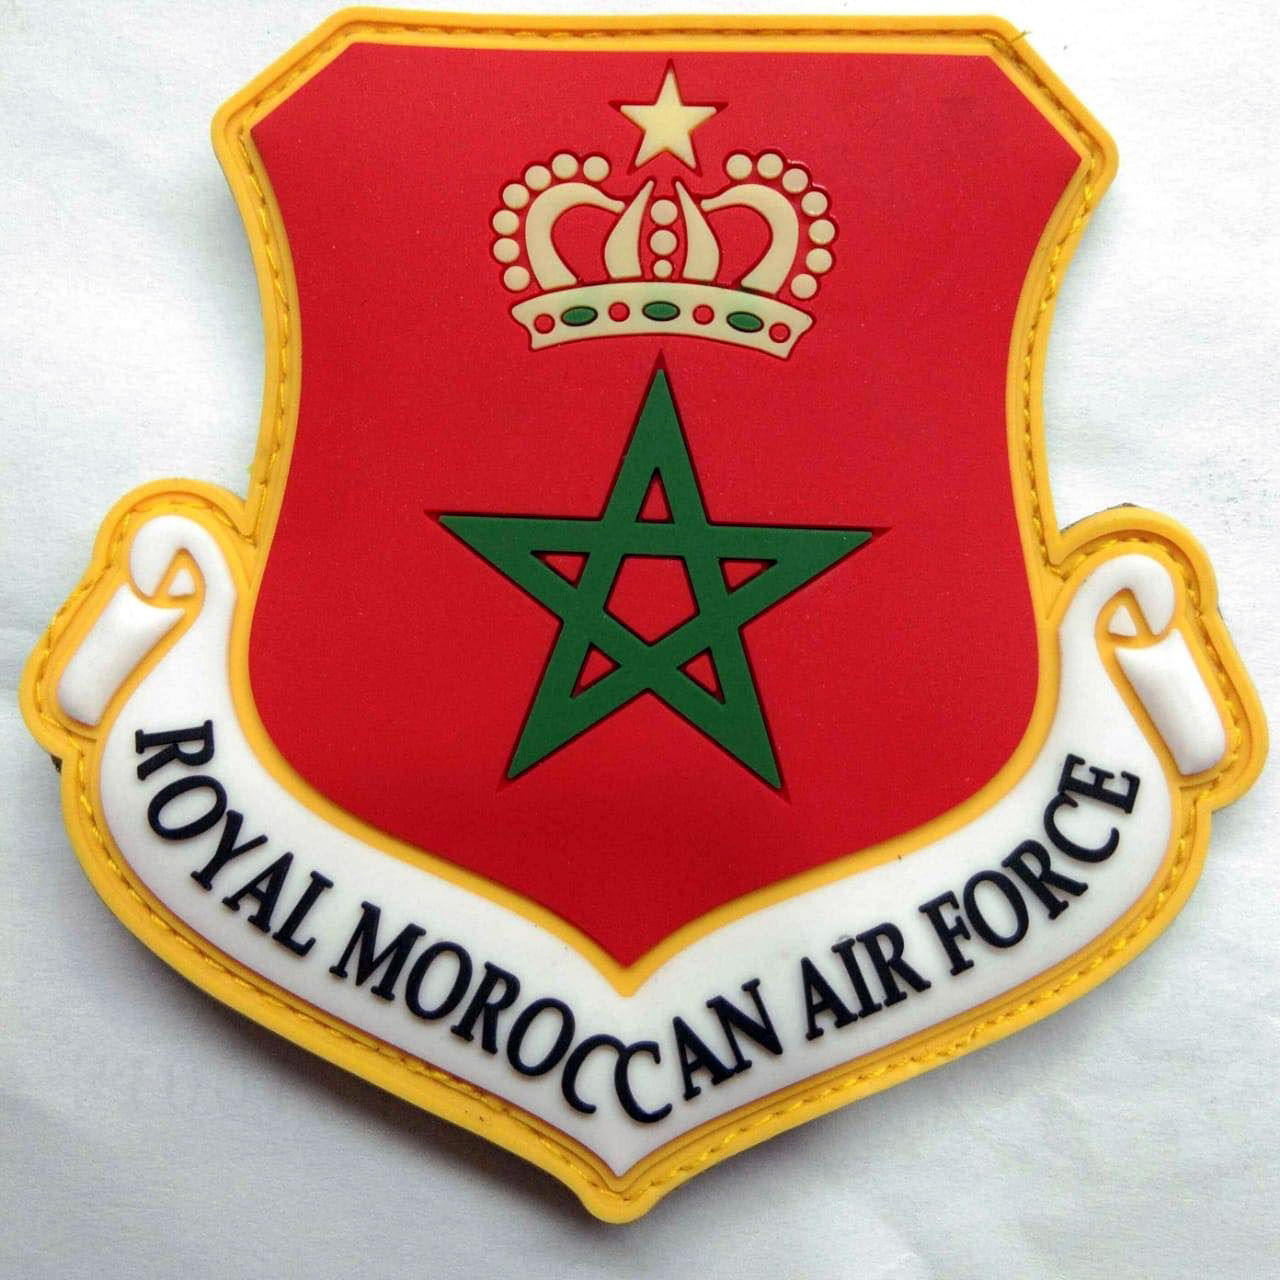 RMAF insignia Swirls Patches / Ecussons,cocardes et Insignes Des FRA - Page 7 32632638847_0b3179fbf5_o